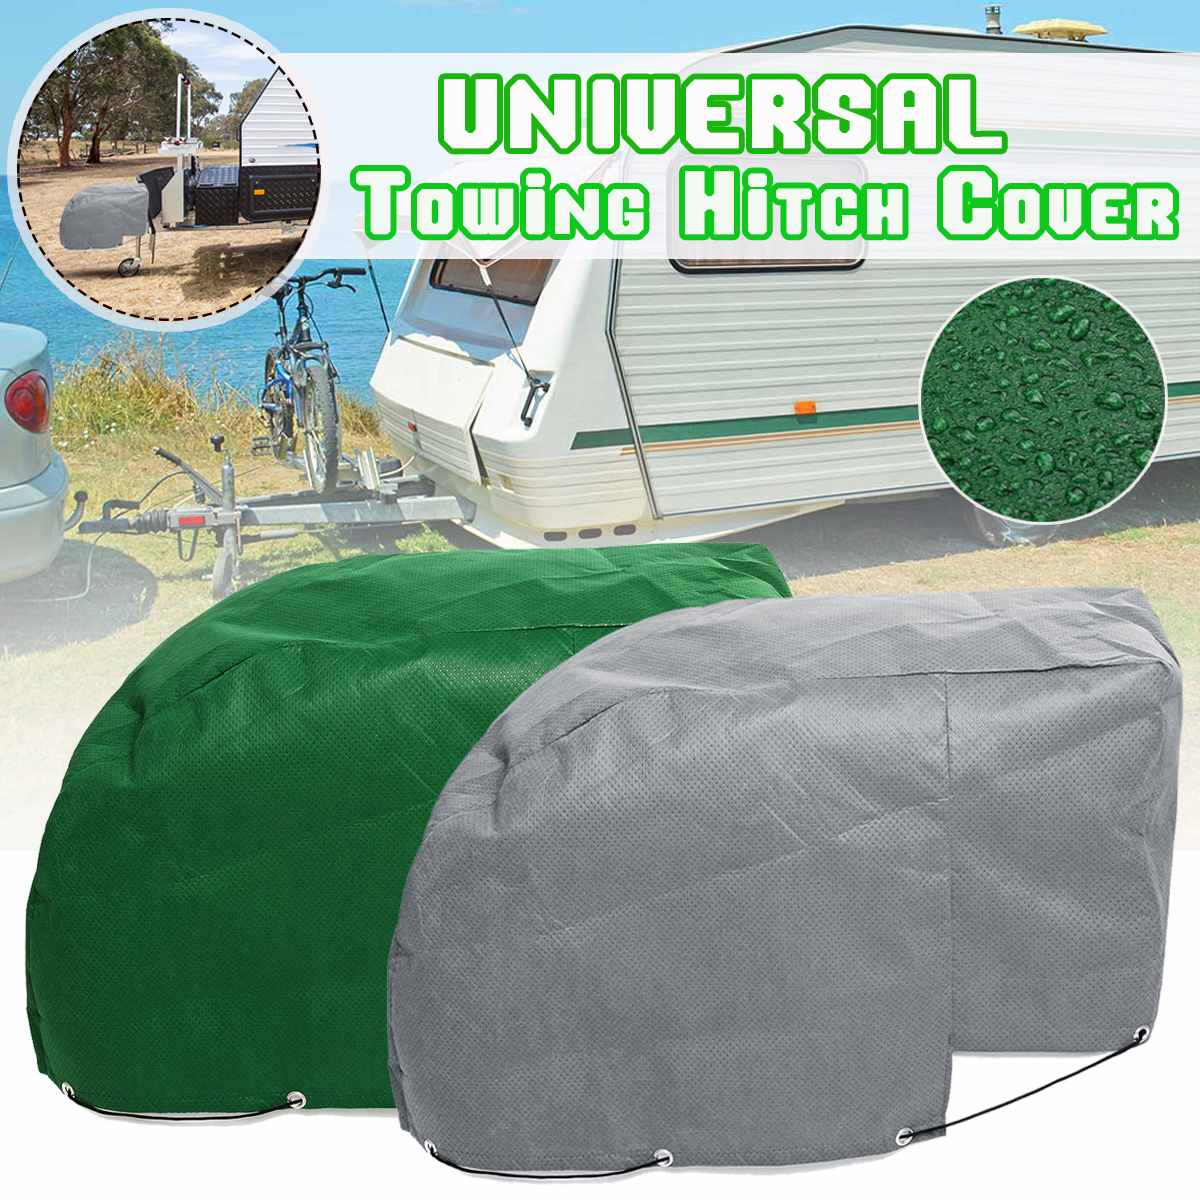 Universal RV Caravan Tailer Towing Hitch Coupling Lock Sunshade Cover Protection Waterproof Dustproof toy story costumes adult